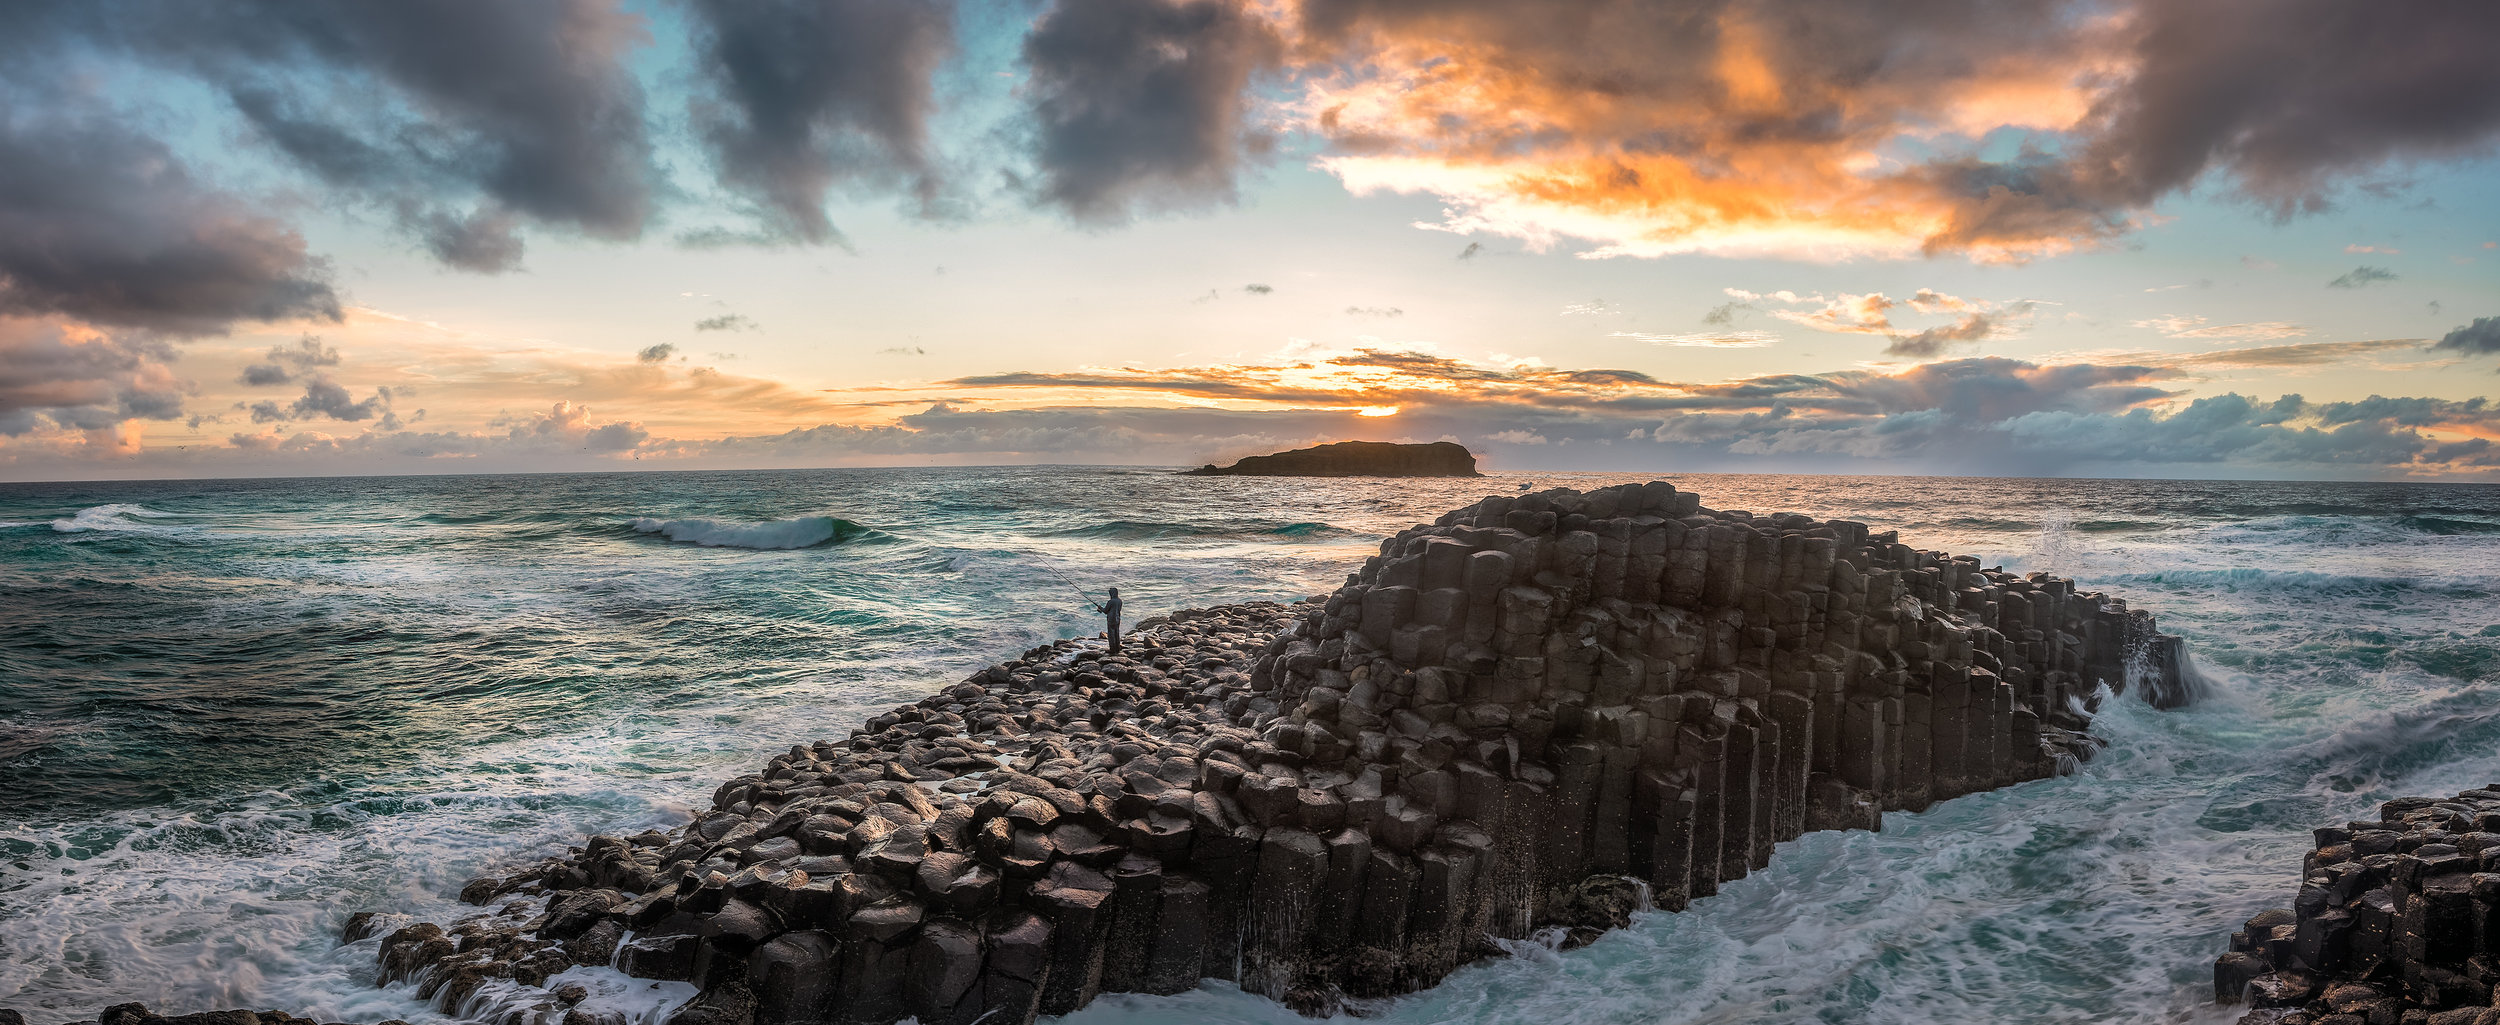 Sunrise over the Giant's Causeway at Fingal Head, New South Wales, Australia - Photo by Paul Tadday